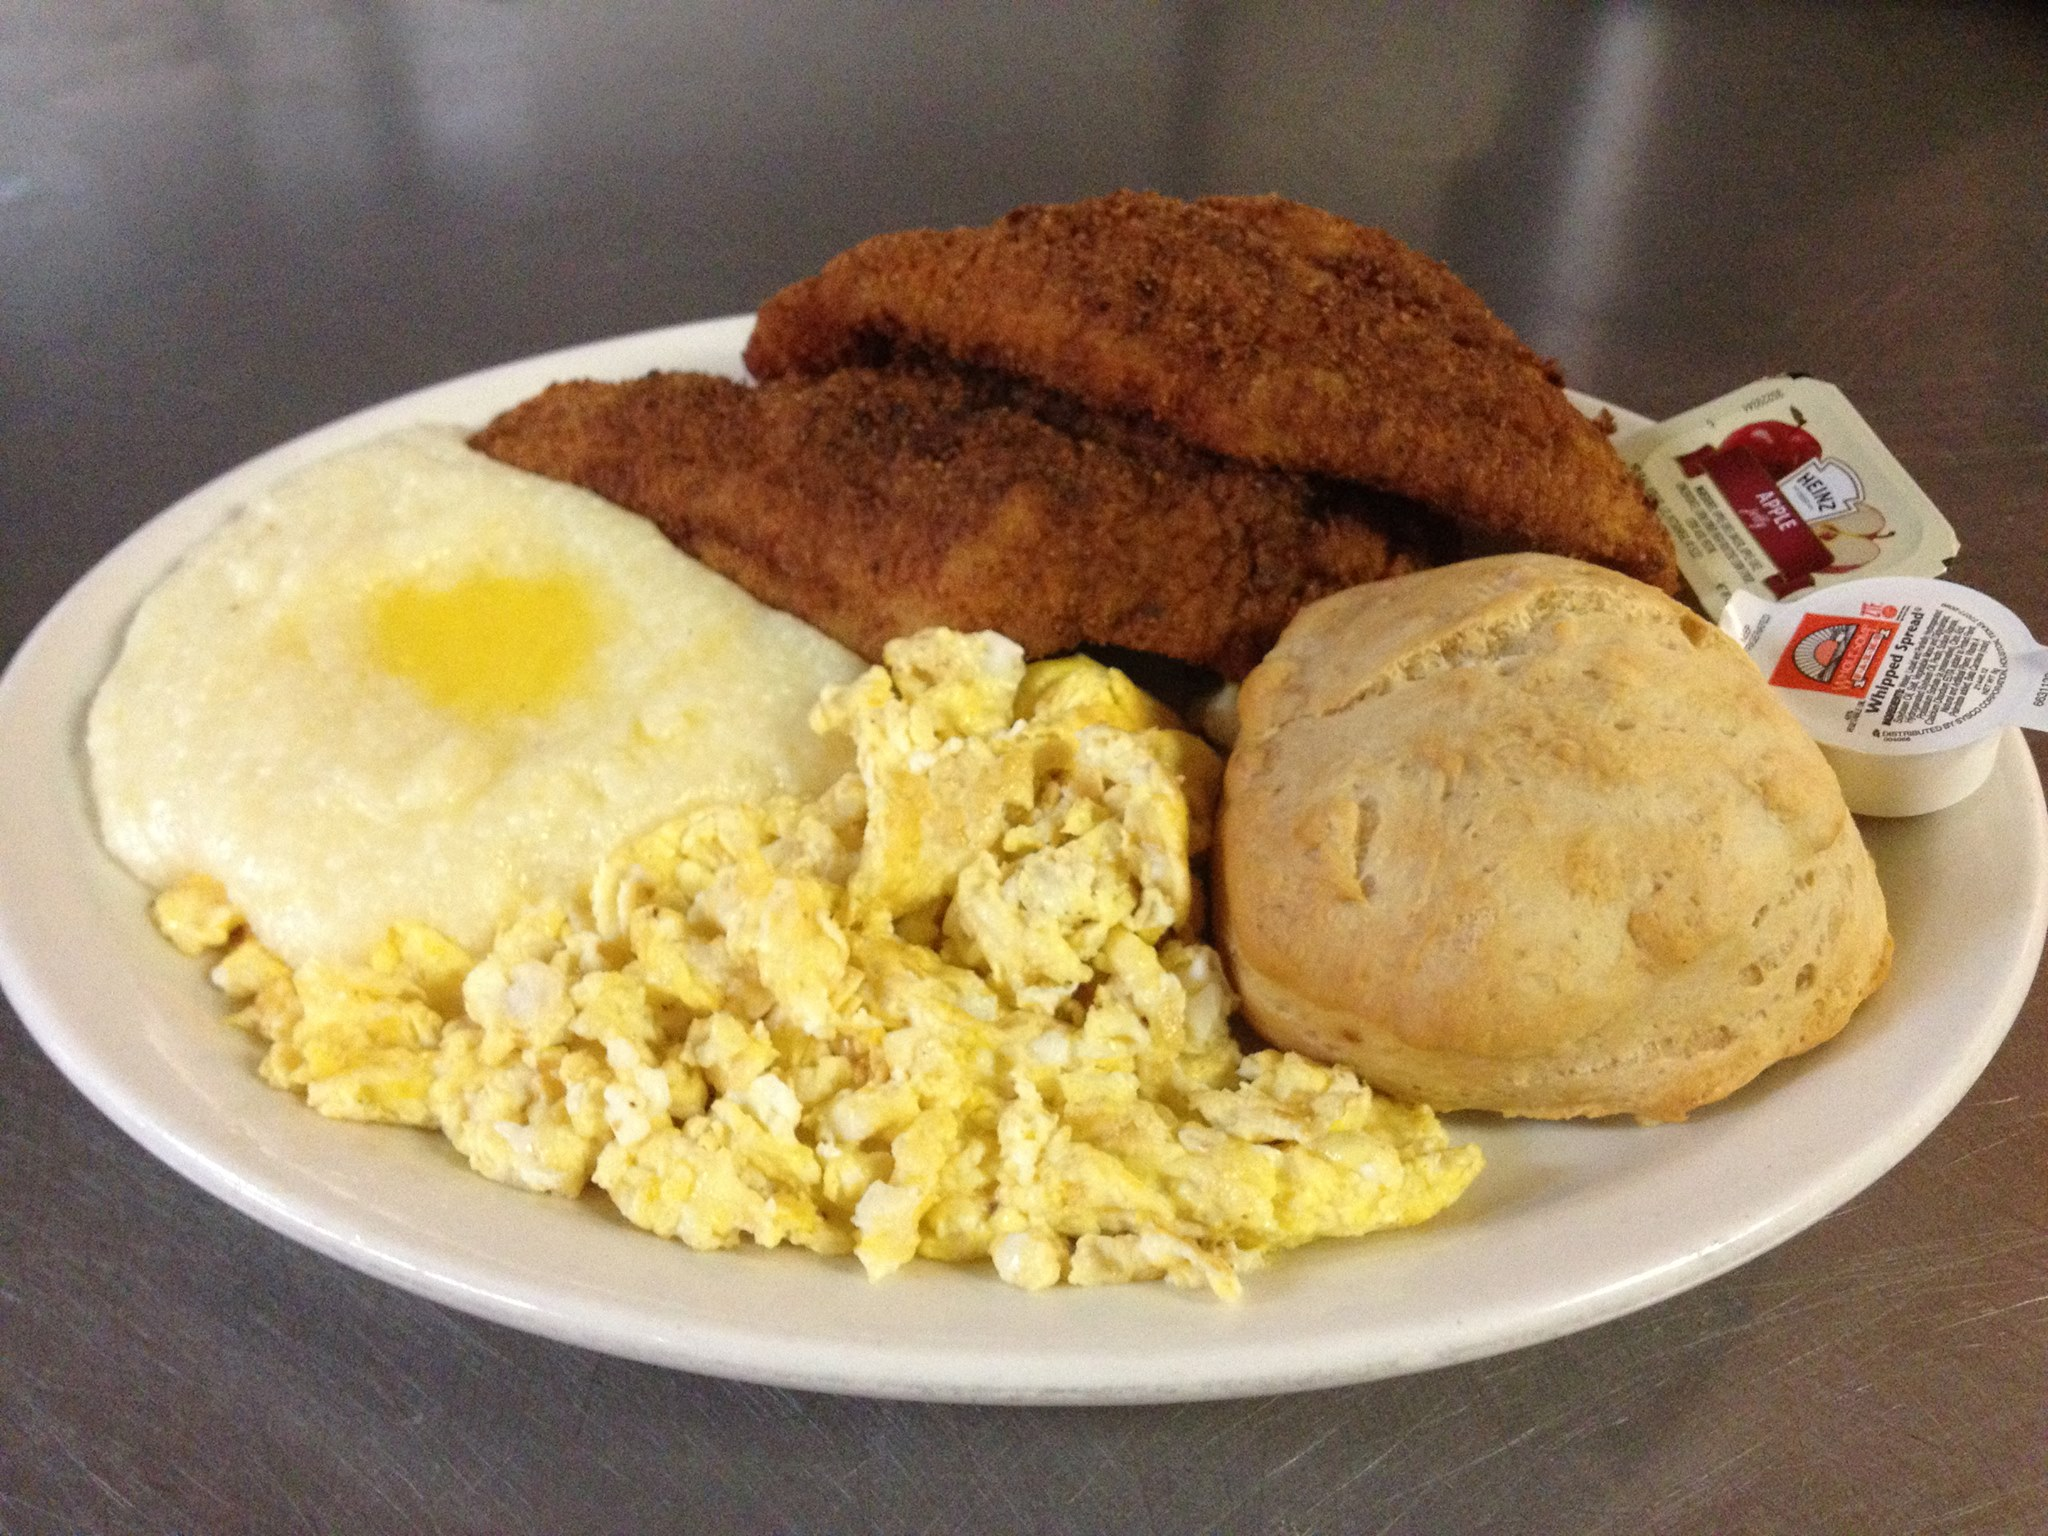 A classic soul food brunch: fish and grits, from the Florida Avenue Grill of Washington, DC